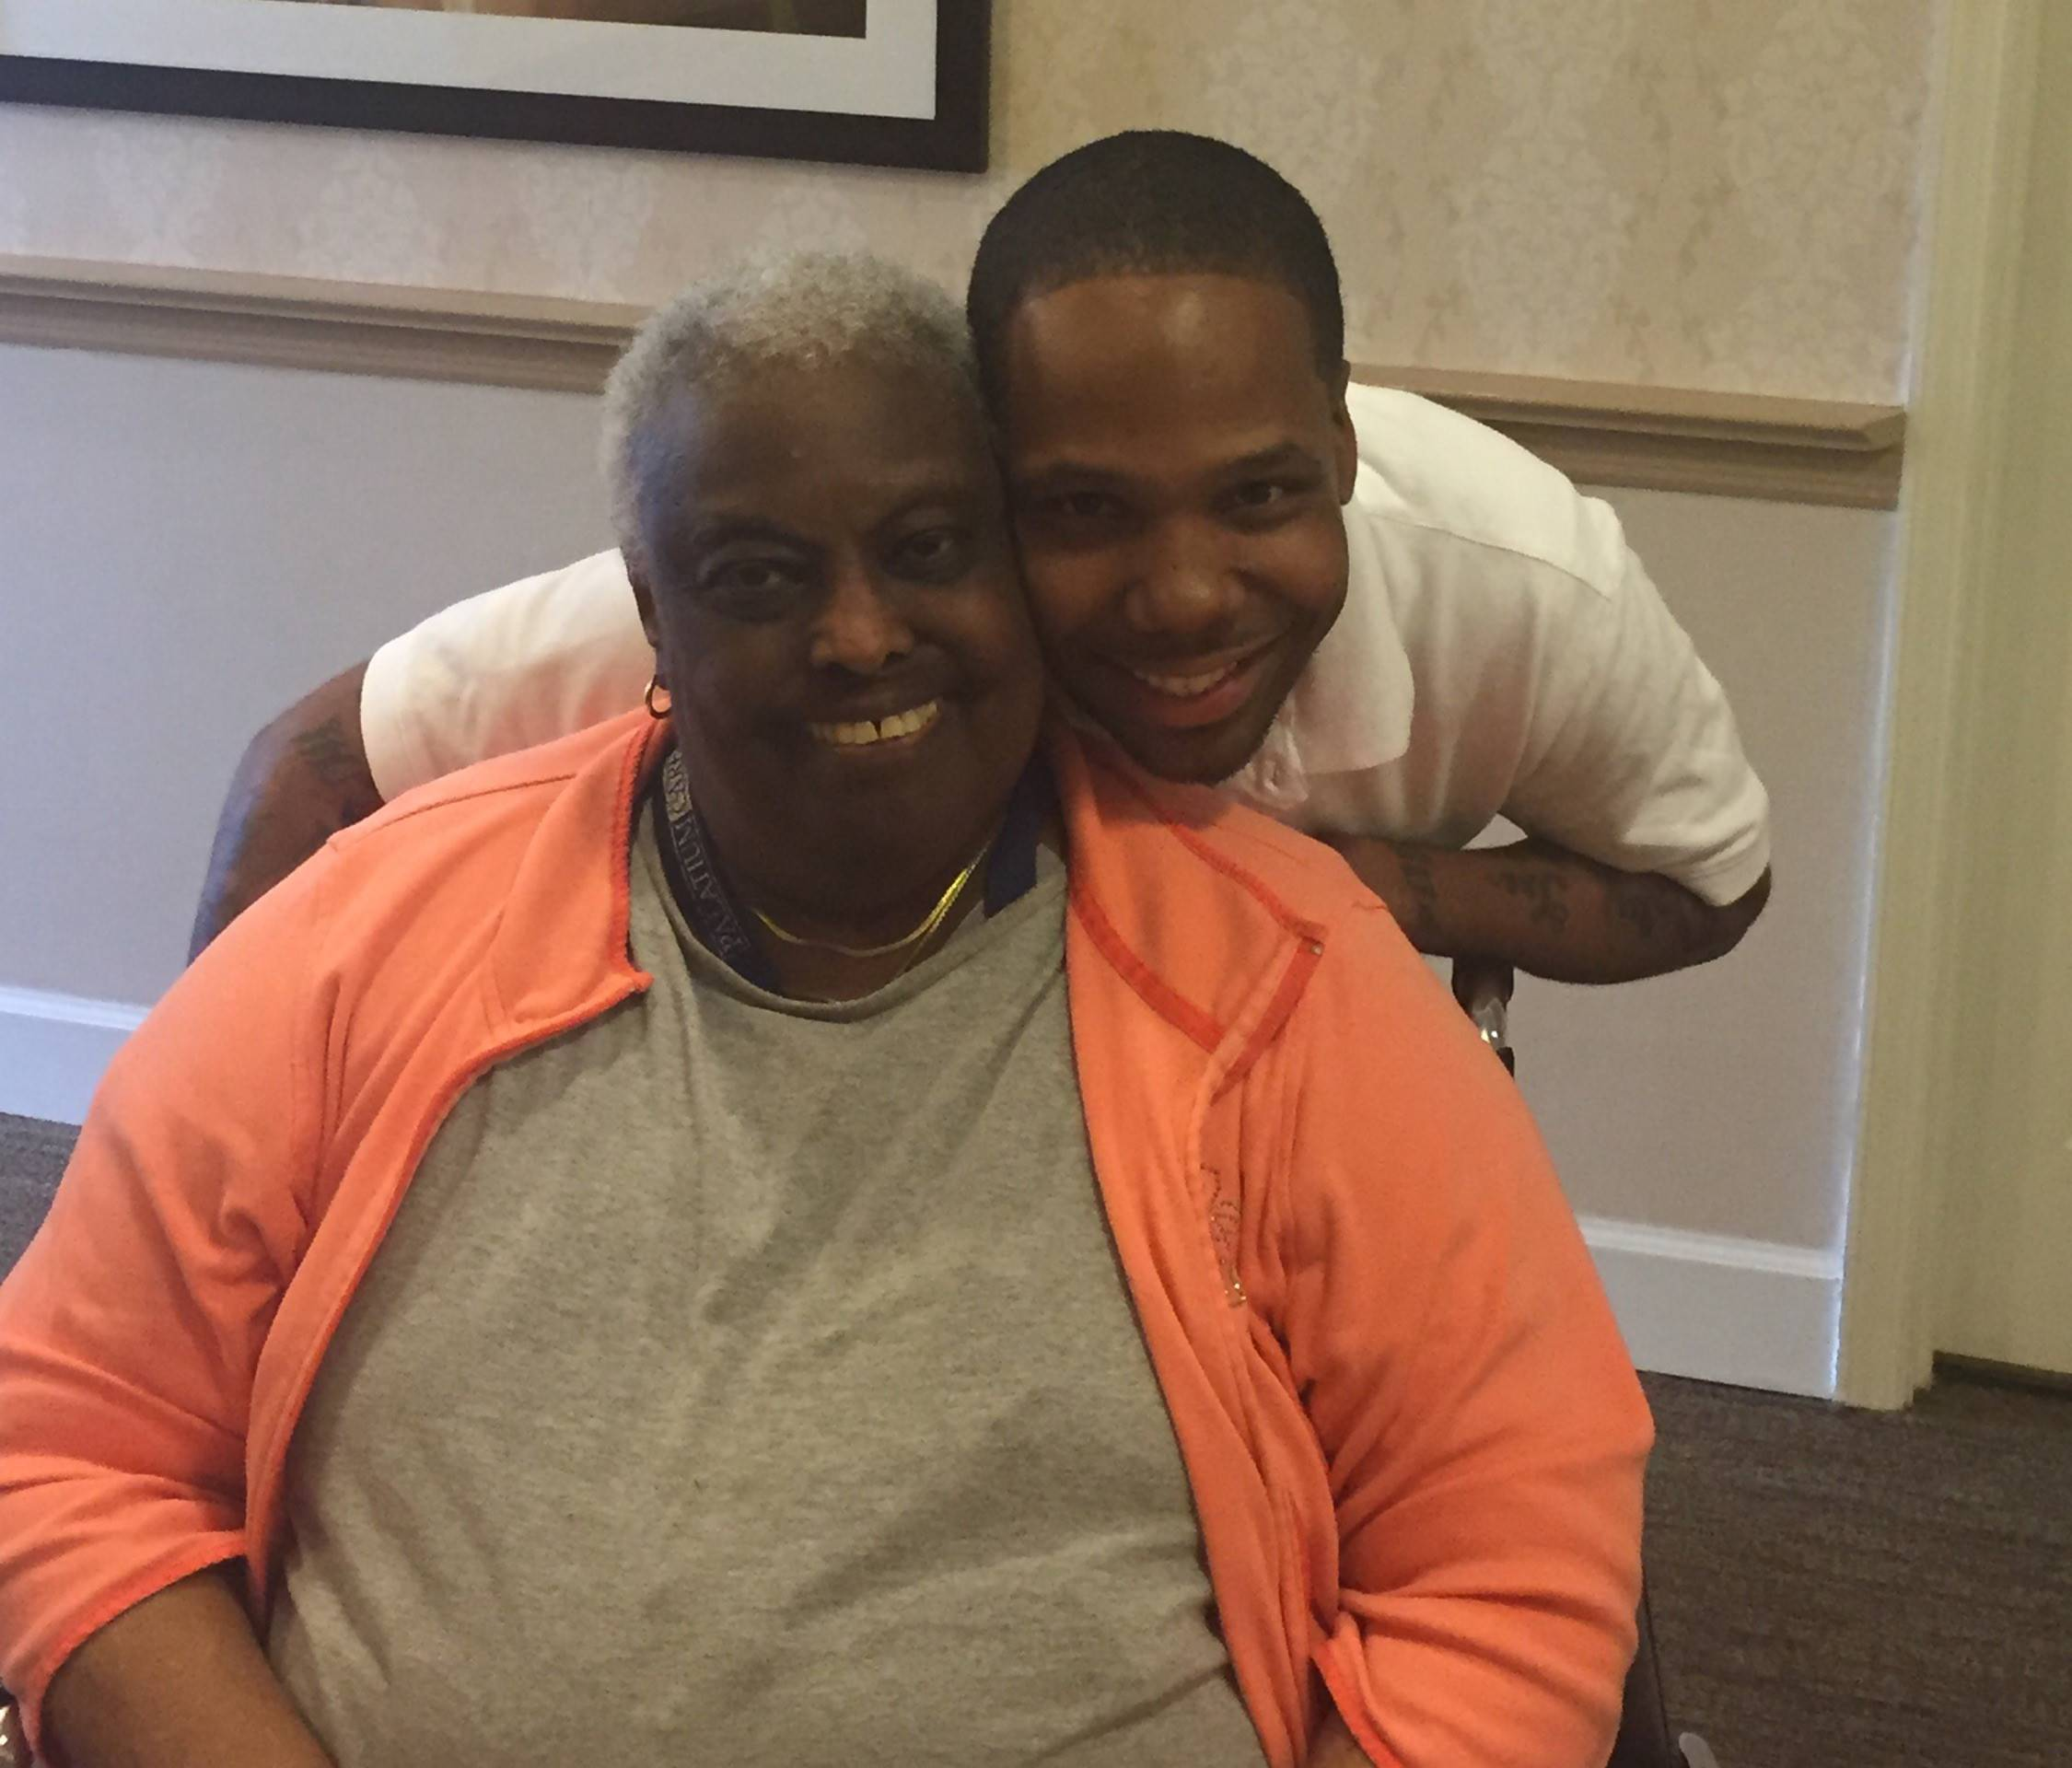 Sunrise Senior Living employee Delonte Carter (right), got his nursing license thanks in part to the tutoring help he received from Sunrise resident Jean Williams.